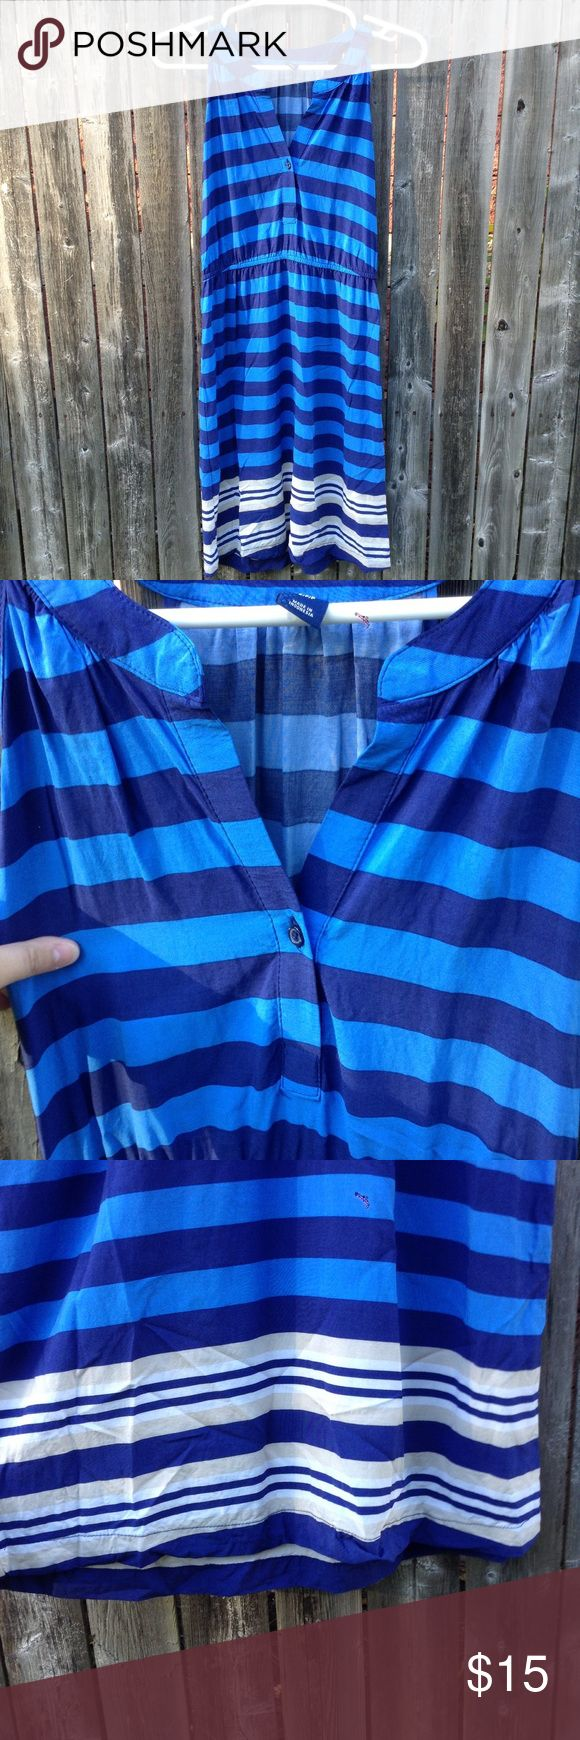 Old Navy Striped Dress This is a cute dress with blue, cream, and white colored stripes. Been used a few times. Has small wears and a small thread pull on the back of the dress. See 2nd to last photo. Old Navy Dresses